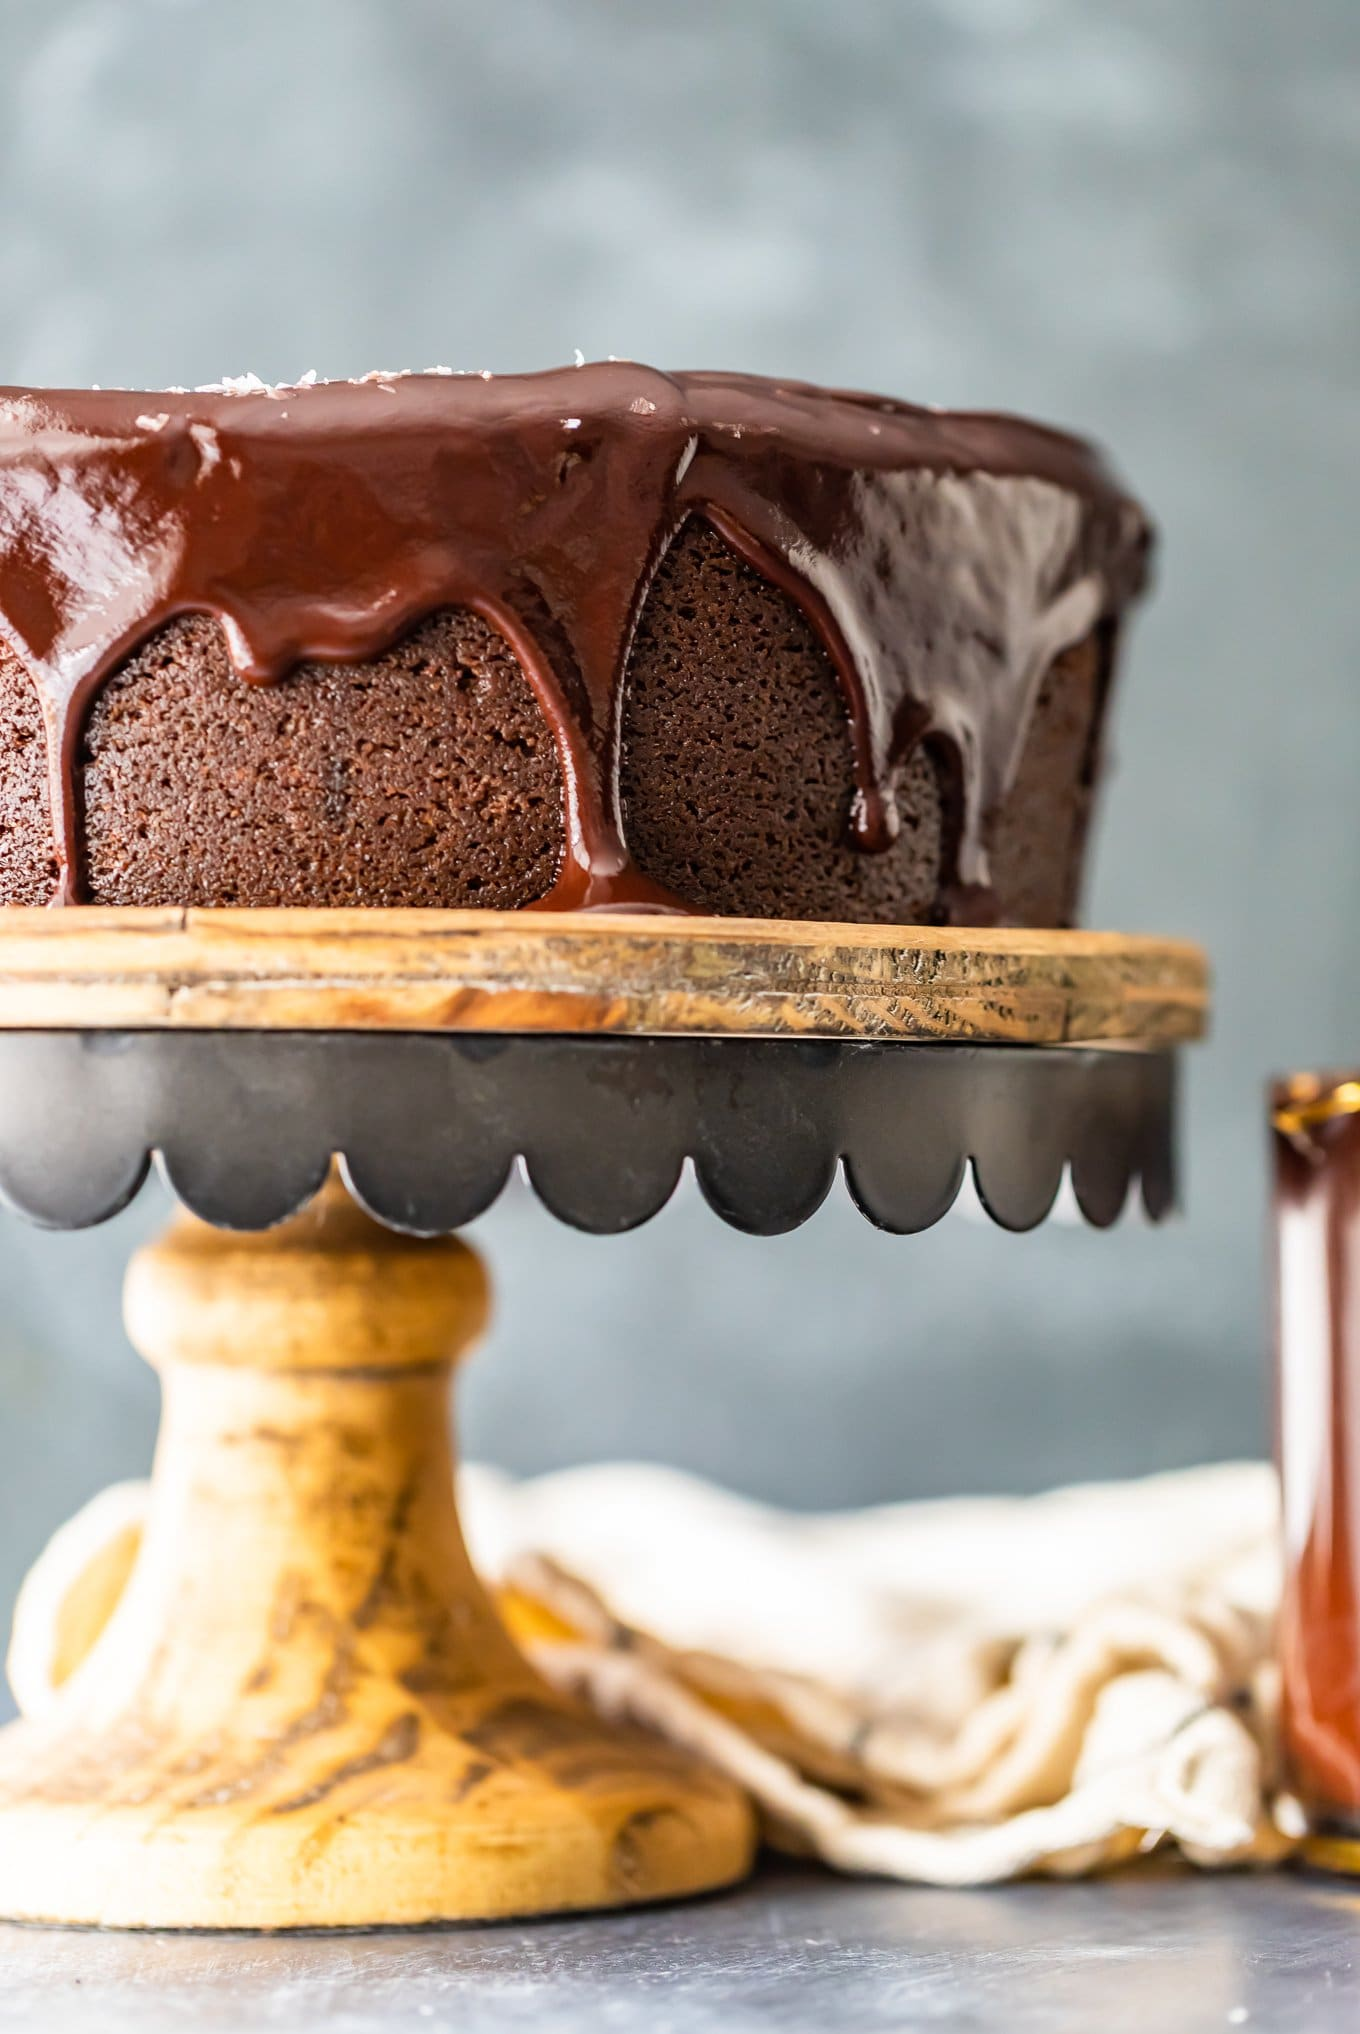 chocolate cake with chocolate icing on a cake stand